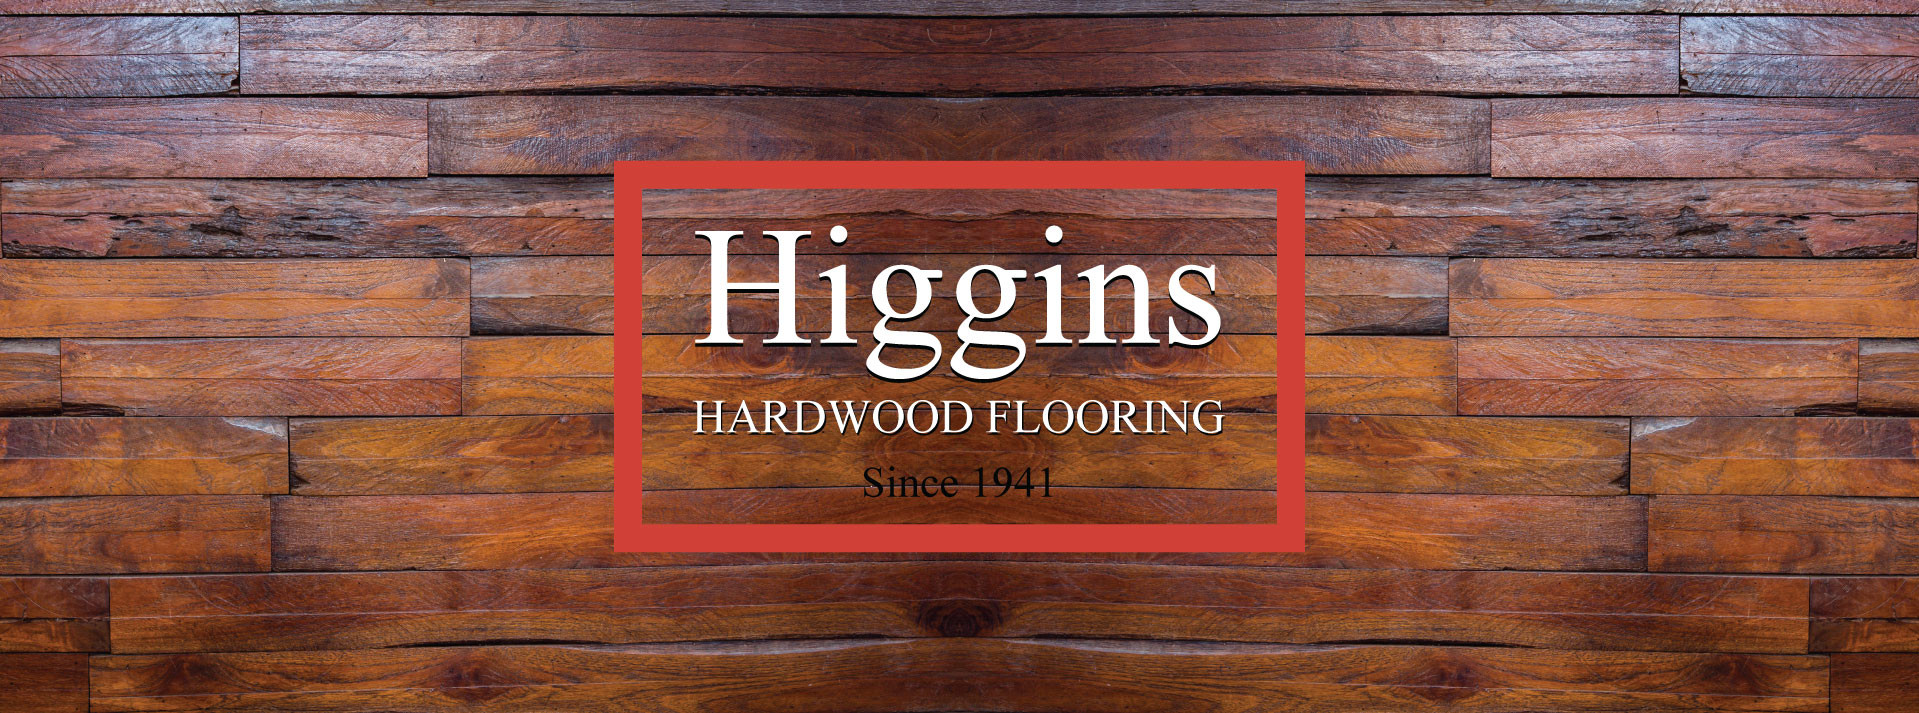 knoxville hardwood floor refinishing of higgins hardwood flooring in peterborough oshawa lindsay ajax with regard to office hours